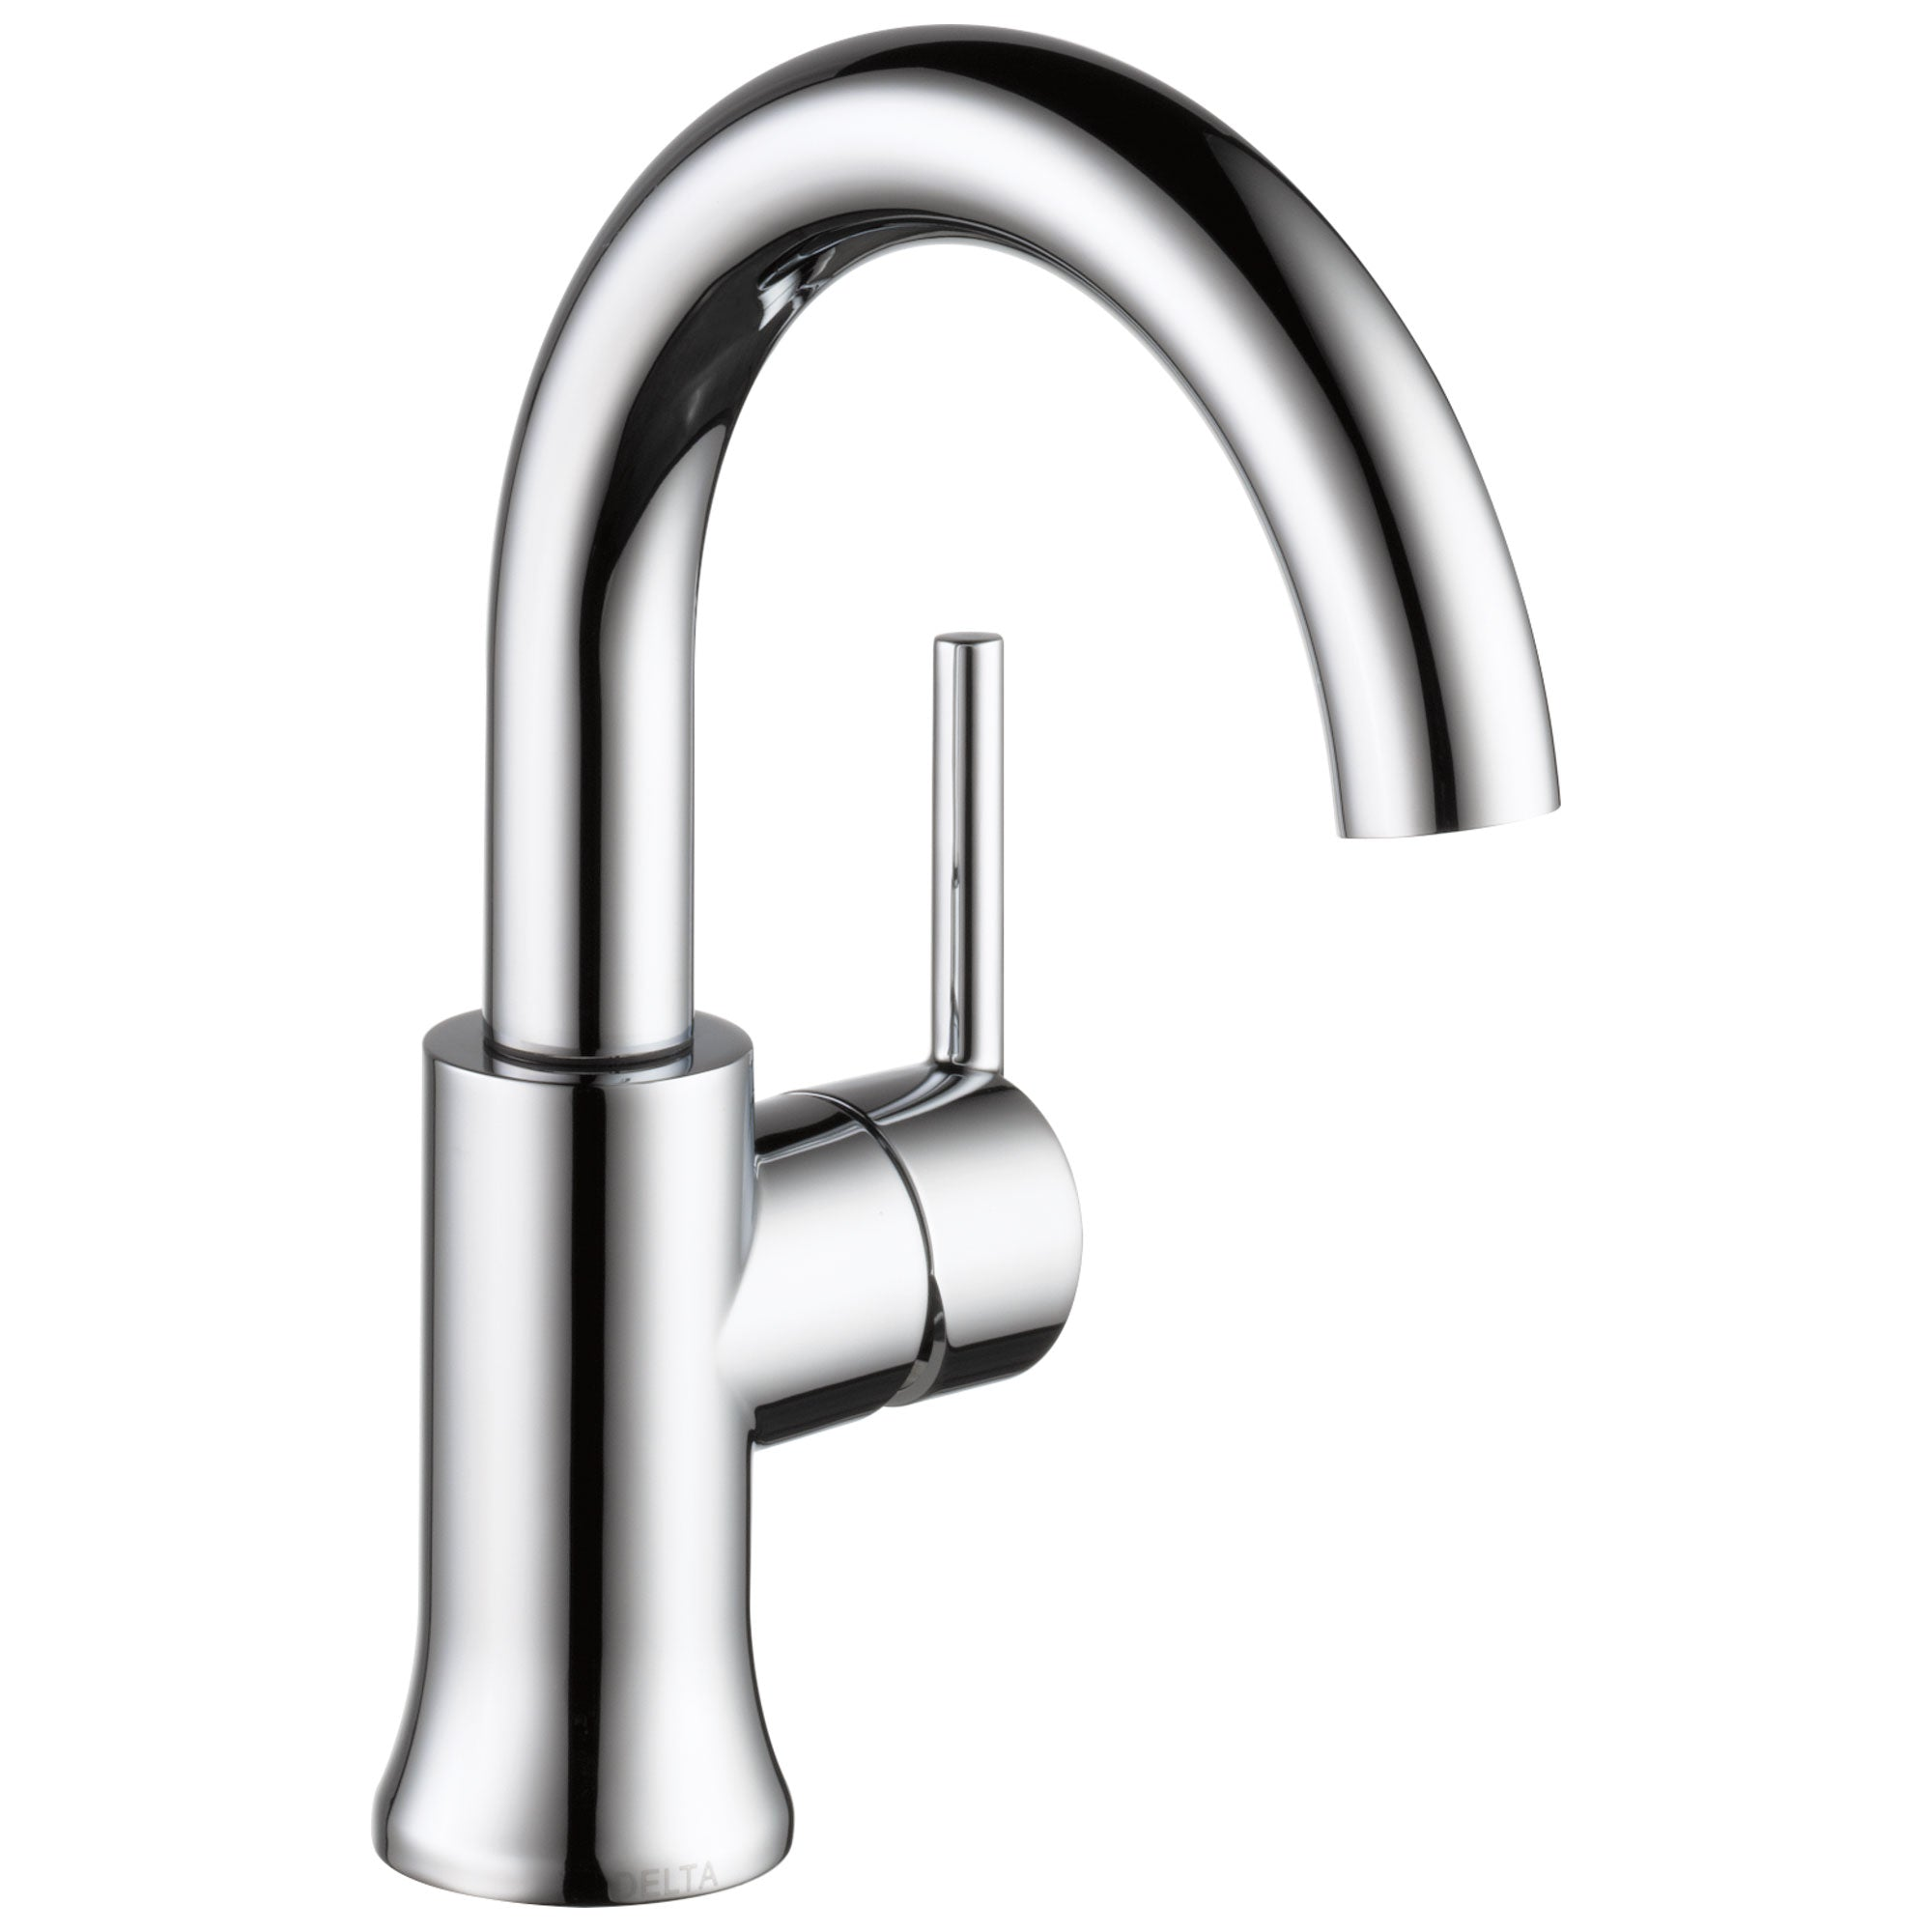 Delta Trinsic Collection Chrome Finish Single Handle Modern High-Arc Spout Lavatory Bathroom Sink Faucet with Metal Pop-up Drain D559HADST